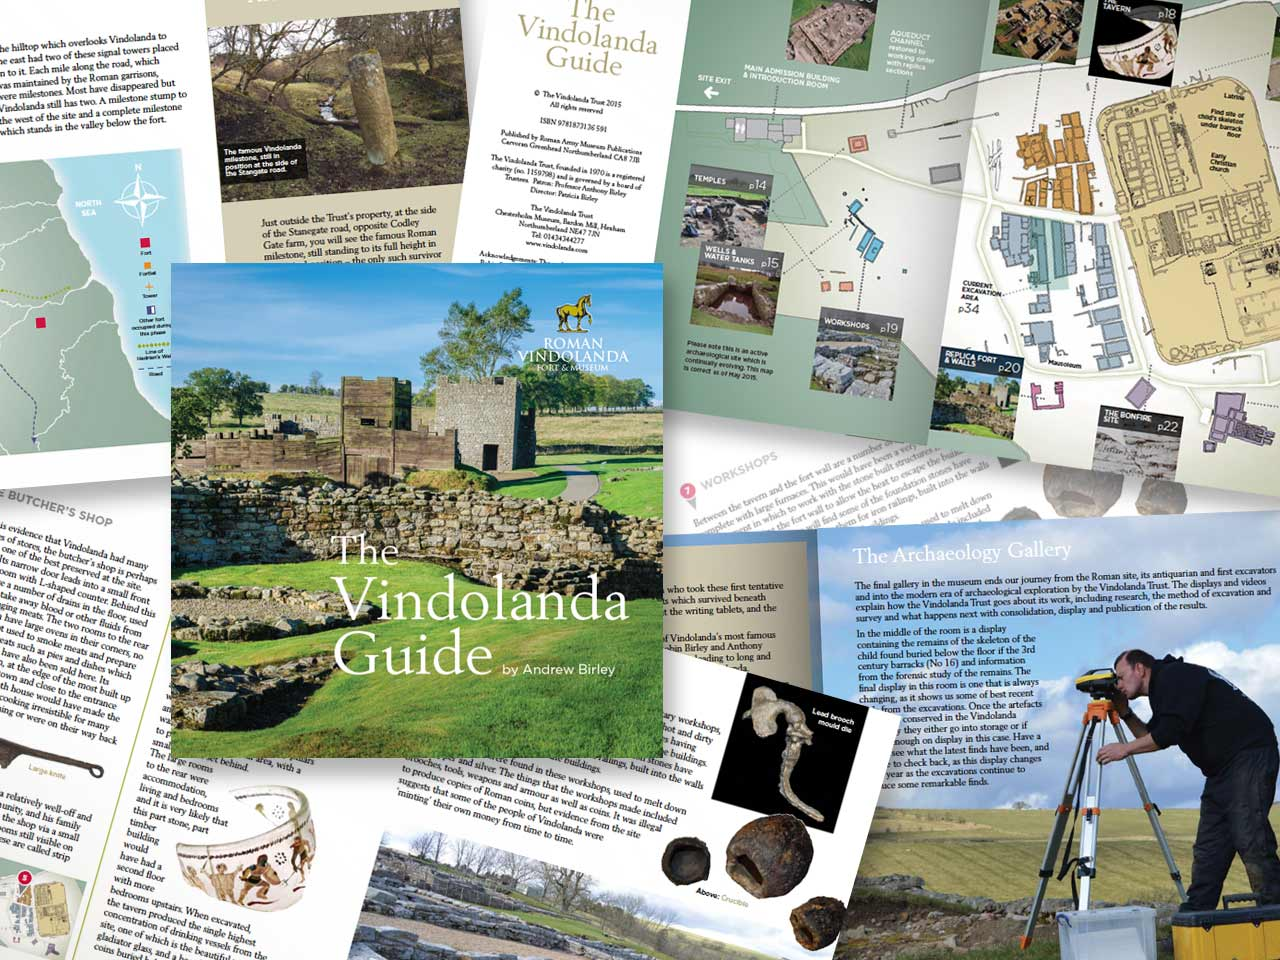 vindolanda literature design and artwork